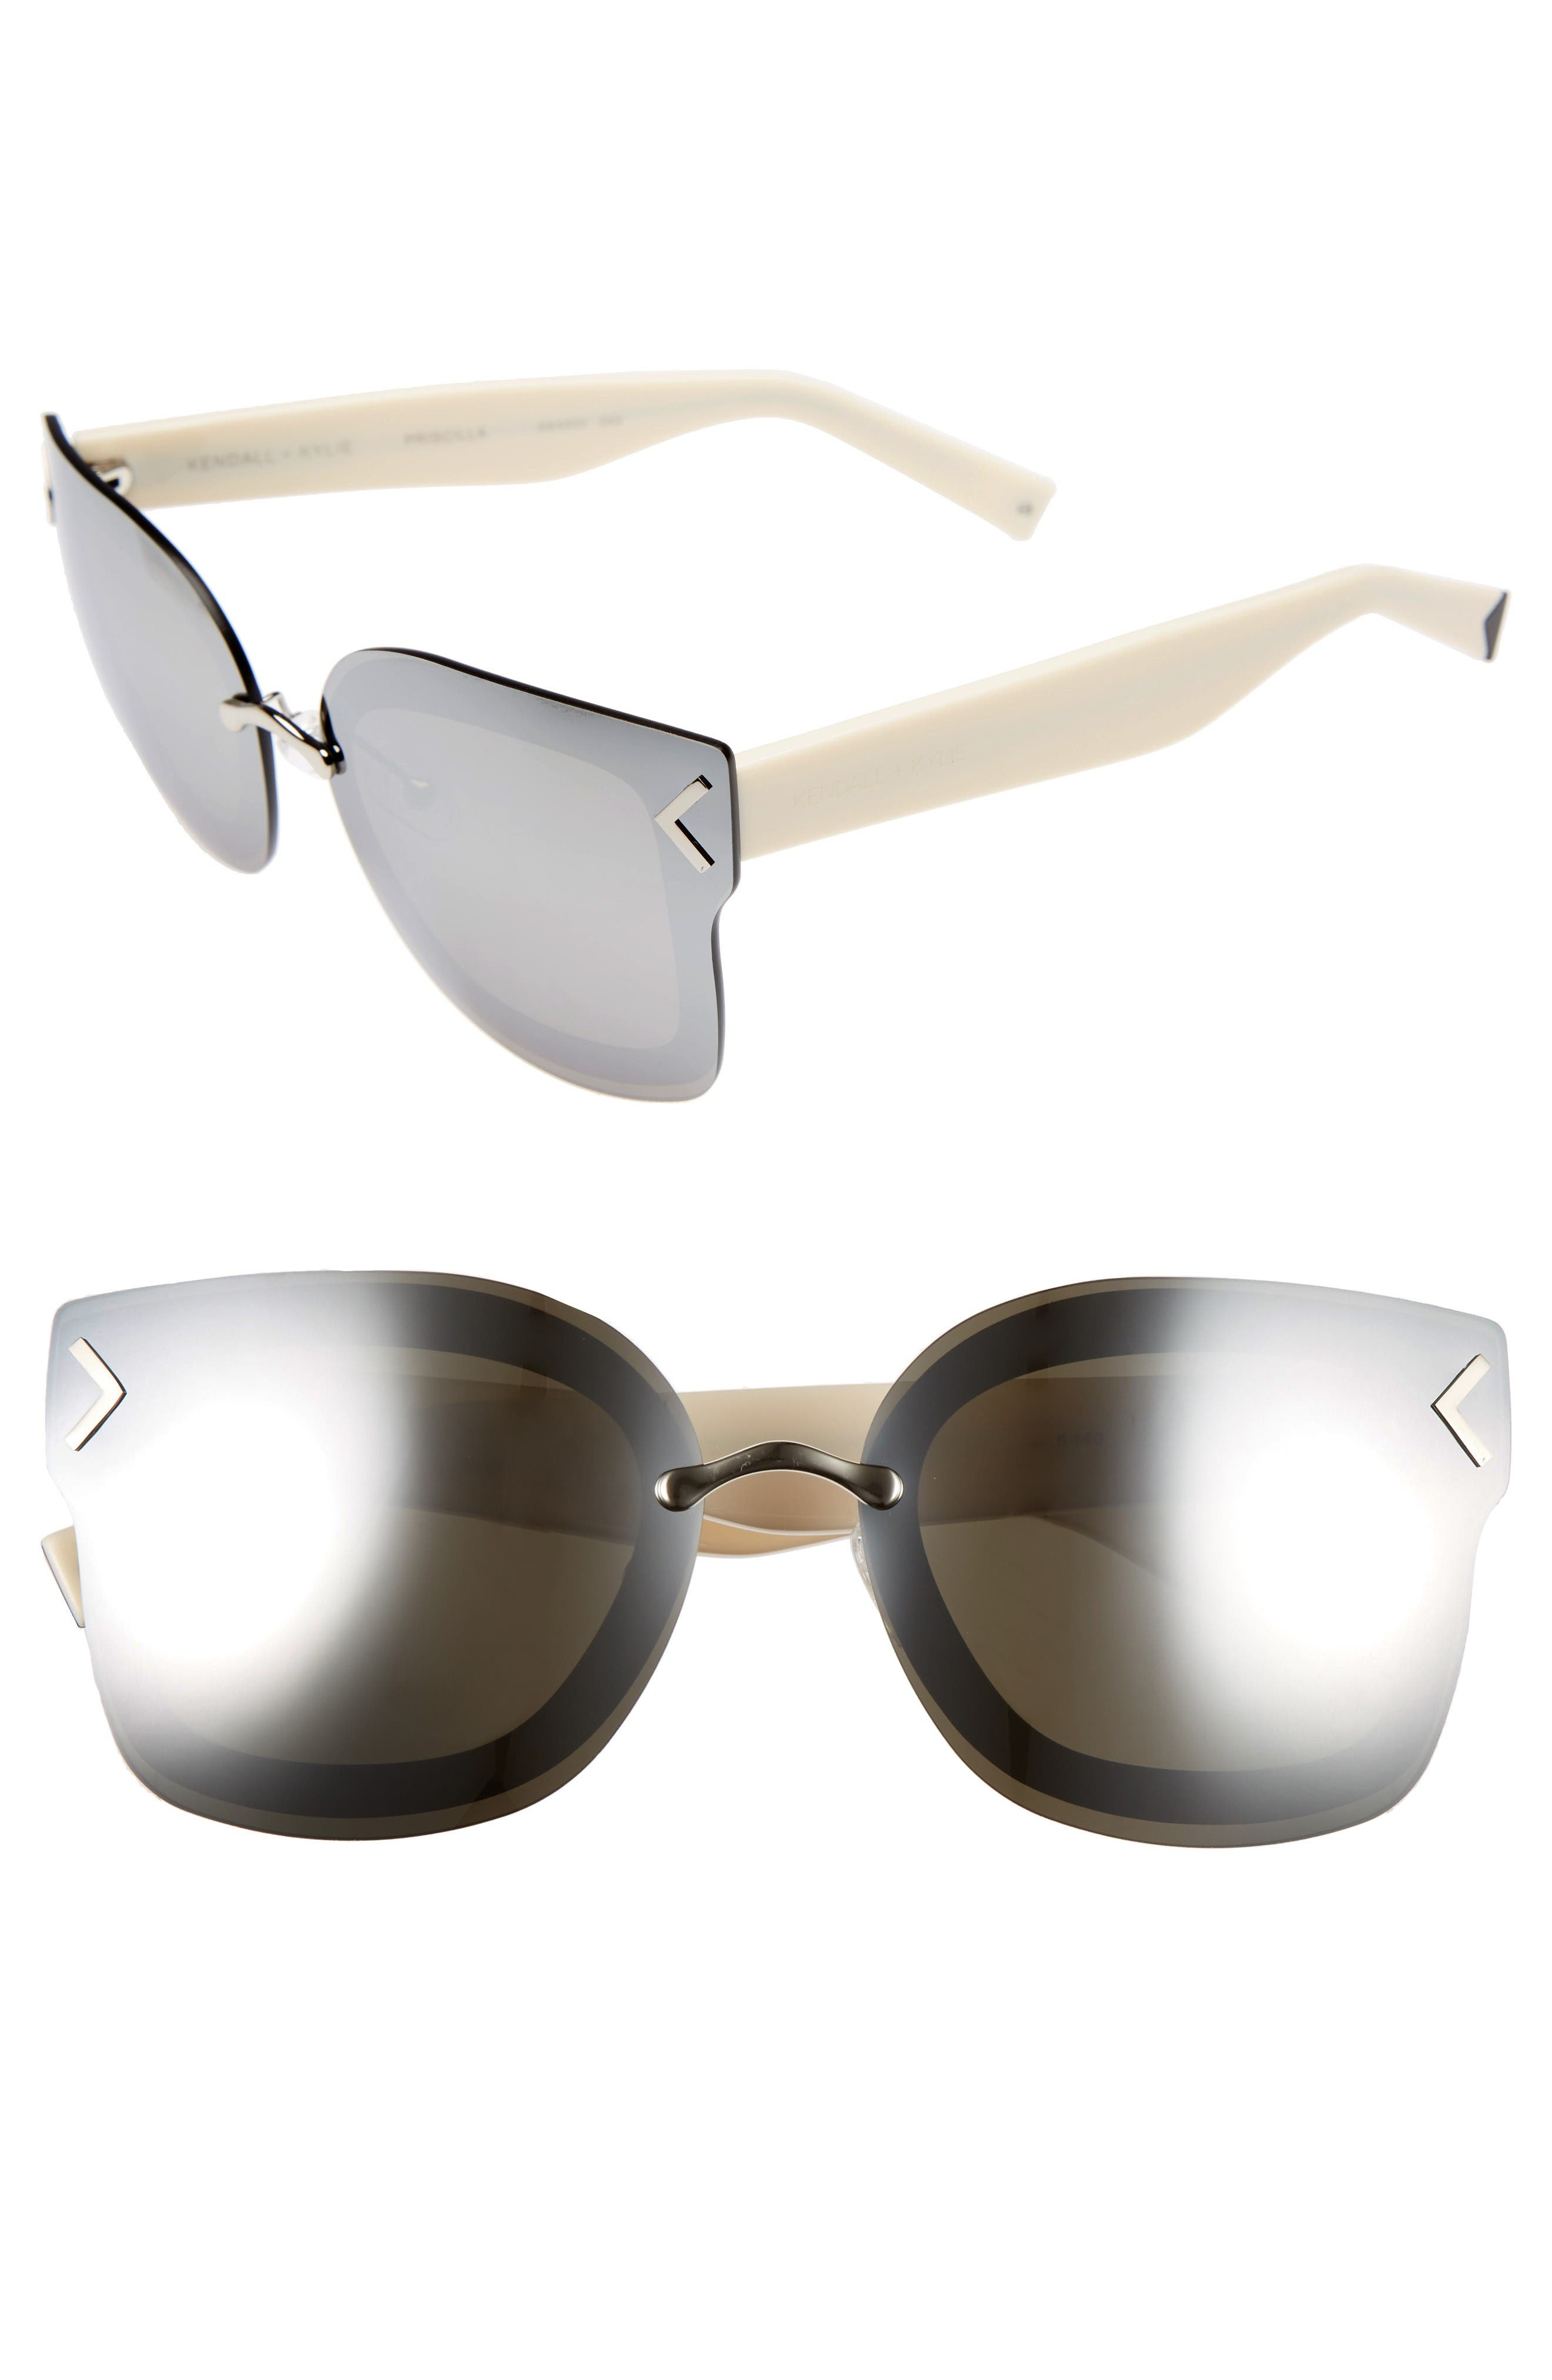 Main Image - KENDALL + KYLIE Priscilla 65mm Butterfly Sunglasses